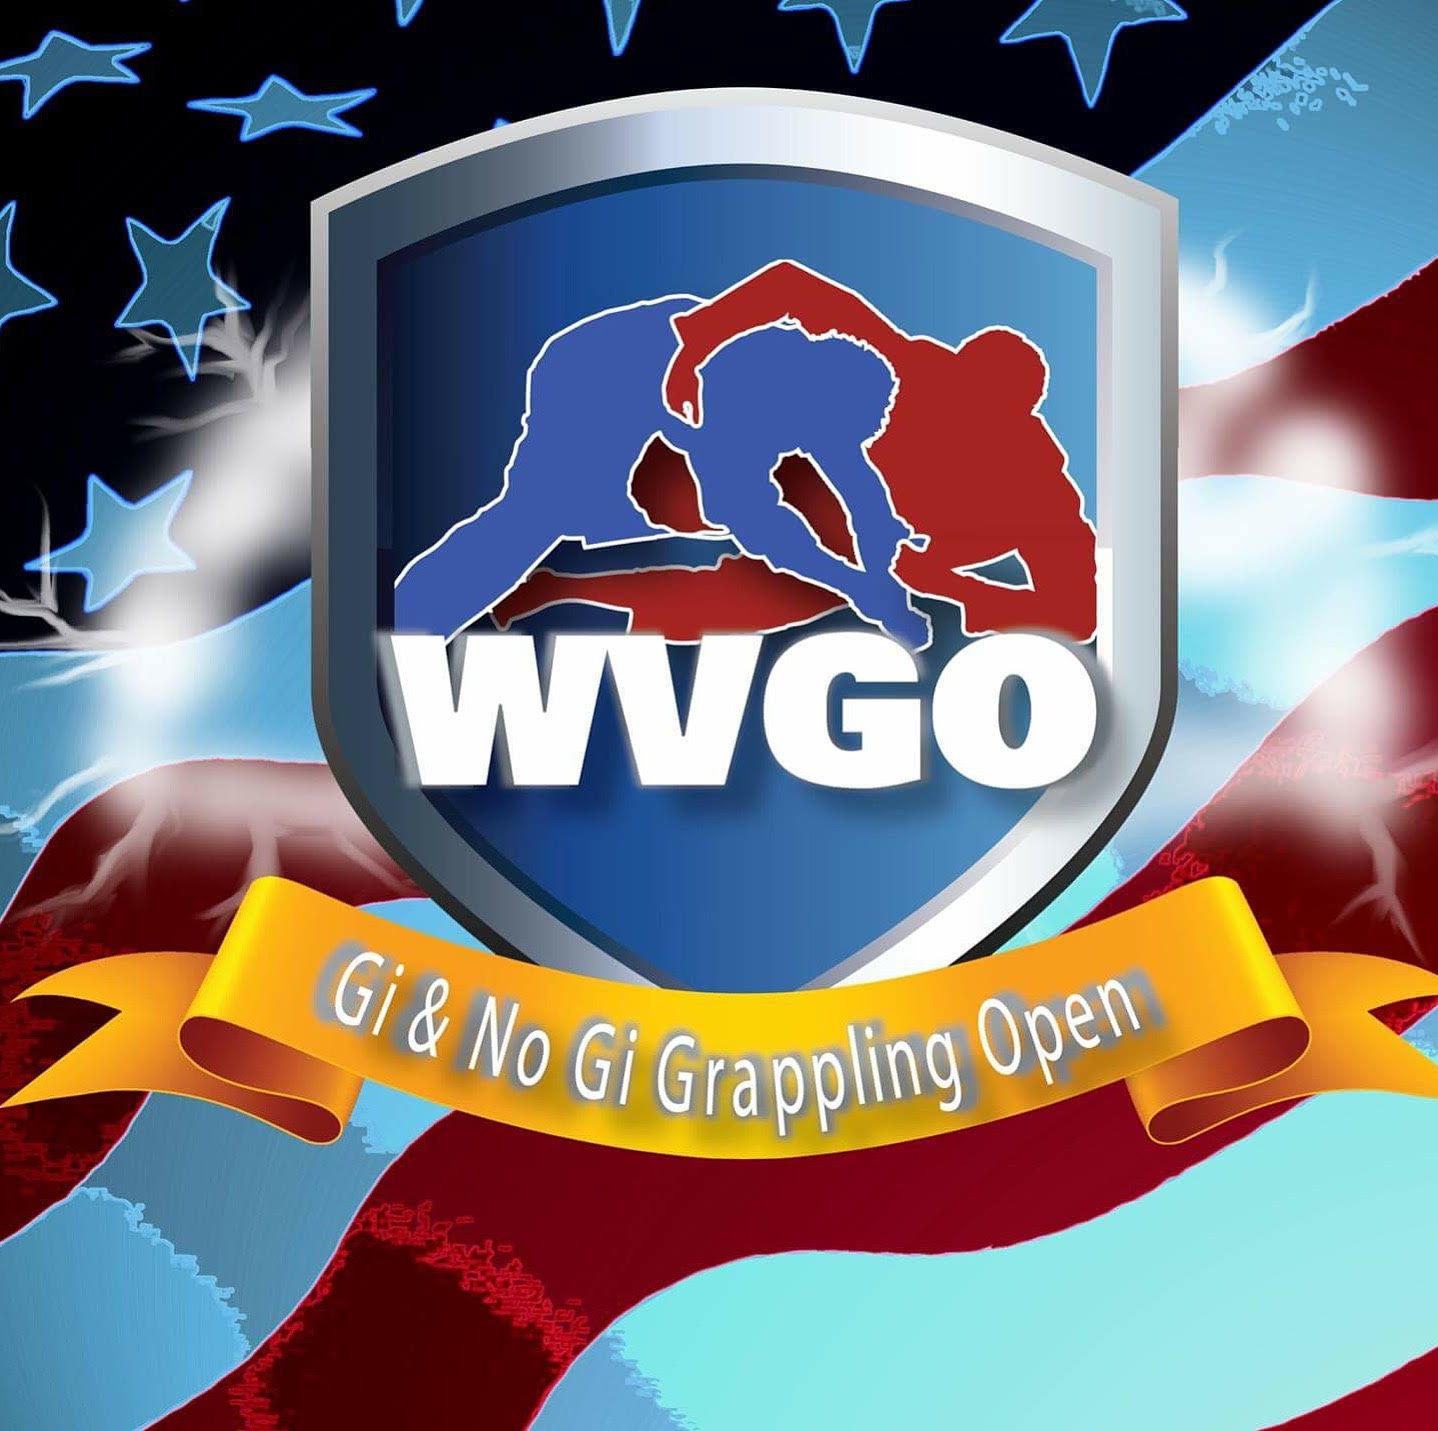 WVGO - Gi & No Gi Tournaments Across the Country